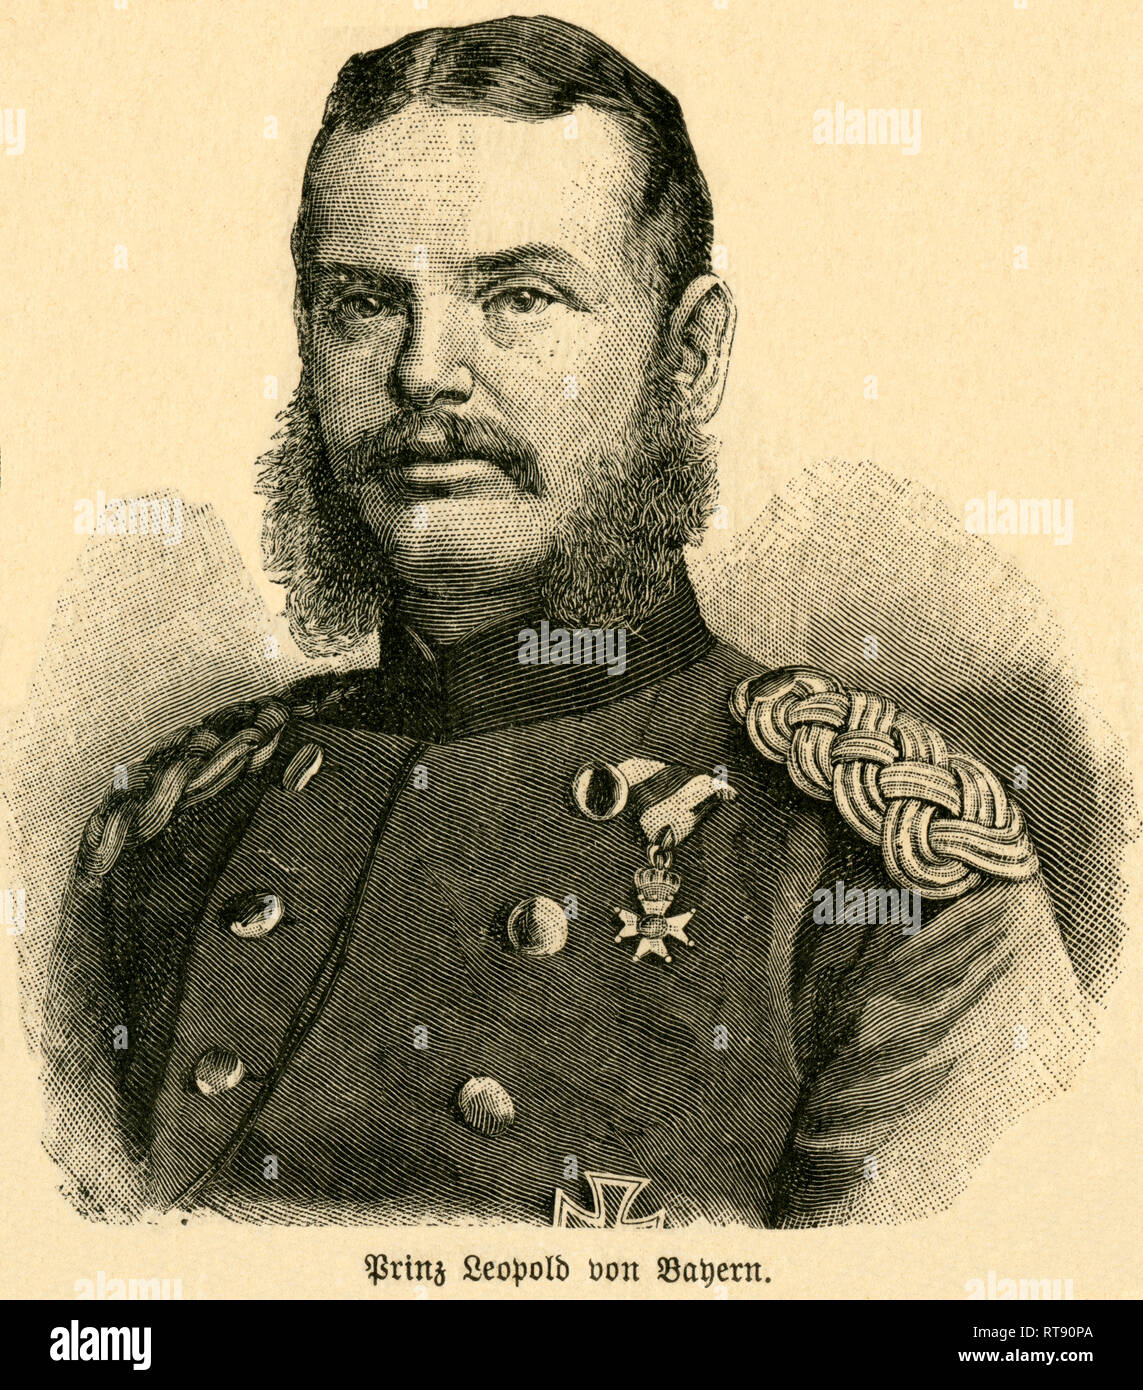 "Prince Leopold of Bavaria, Field Marshall, Prince Leopold of Bavaria, portrait from: ""Deutschlands Heerführer"" (German military leader), 1640-1894, portrayed by Sprößer, publishing house Ferdinand Hirt and son, Leipzig, 1895., Additional-Rights-Clearance-Info-Not-Available Stock Photo"